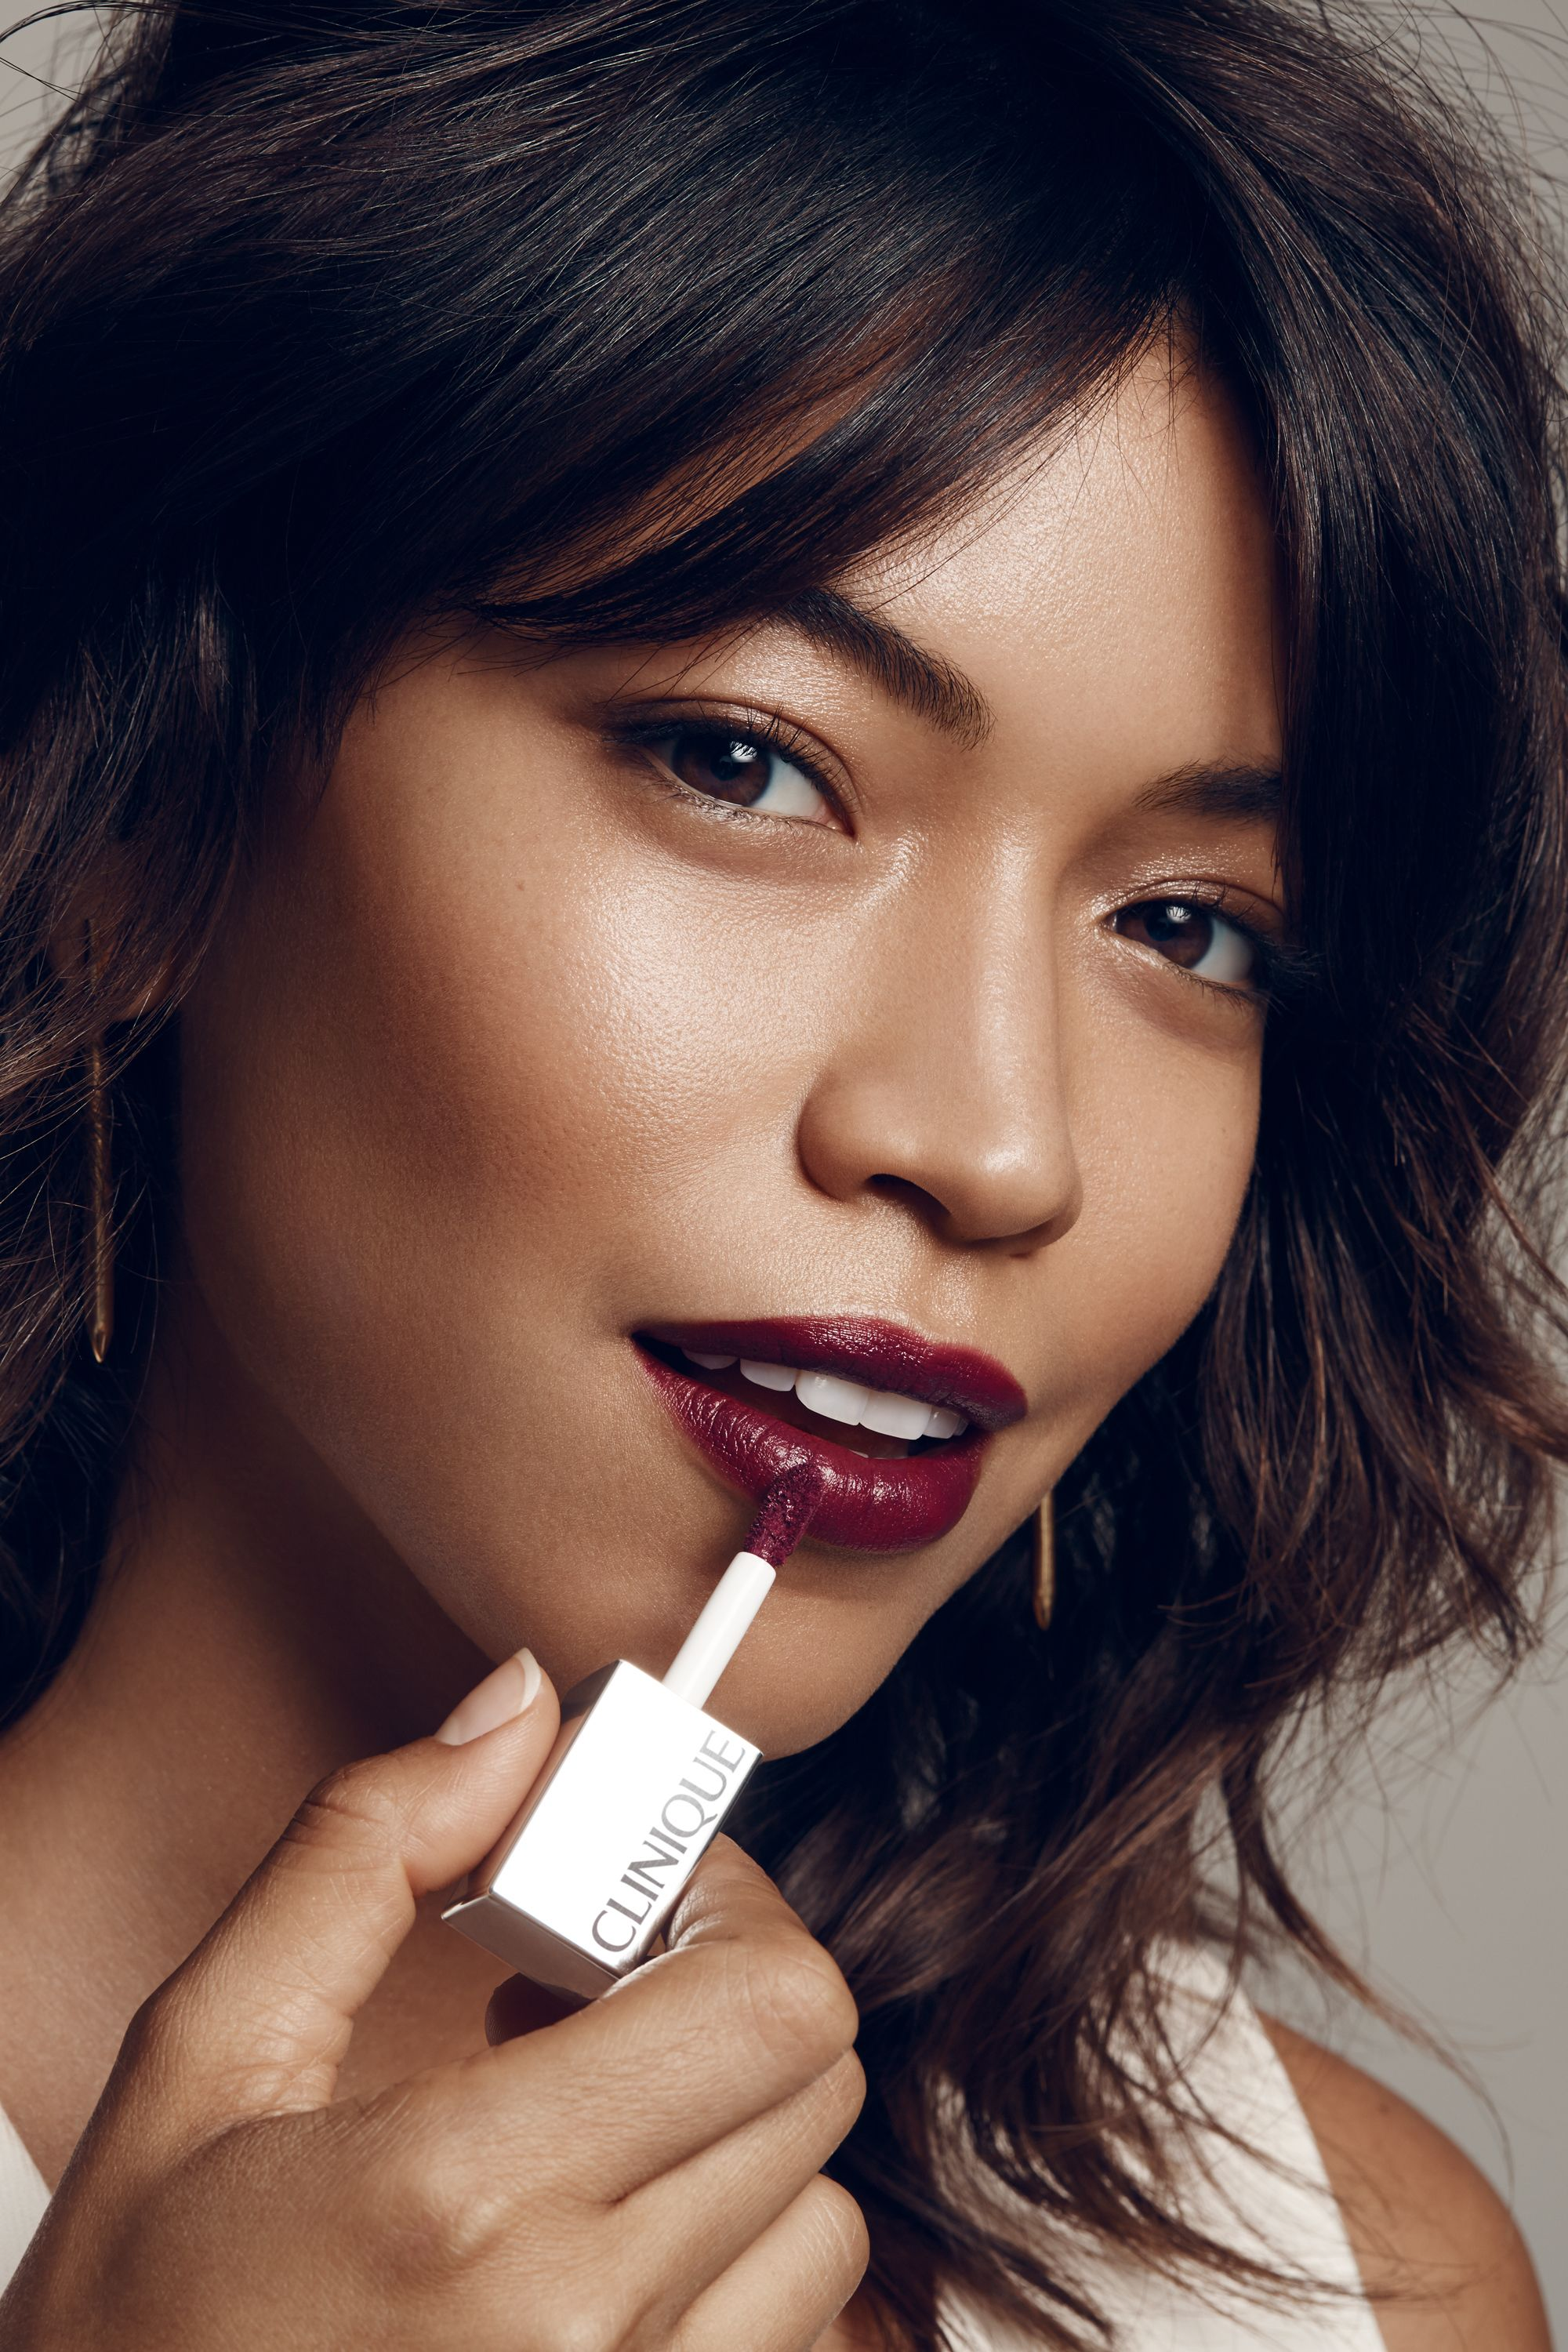 "<p>The saturated nature of the typical matte lipstick means that wherever you apply it, there it stays, requiring a steady hand. But a liquid matte formula, like Clinique Pop Liquid Matte Lip Colour + Primer<span class=""redactor-invisible-space"" data-verified=""redactor"" data-redactor-tag=""span"" data-redactor-class=""redactor-invisible-space"">,</span> spreads easily before setting, making precise application a breeze. Dab the liquid lip color straight onto the center of your upper and lower lips, press lips together, and use your index finger to push the color in and out into the corners. ""Pressing gets the color to absorb into the lips for staying power,"" says Park. Dab on another layer, press, and repeat until you reach an intensity you love. ""You can leave it as a deep stain or build up to a full opaque coverage,"" she suggests. </p>"